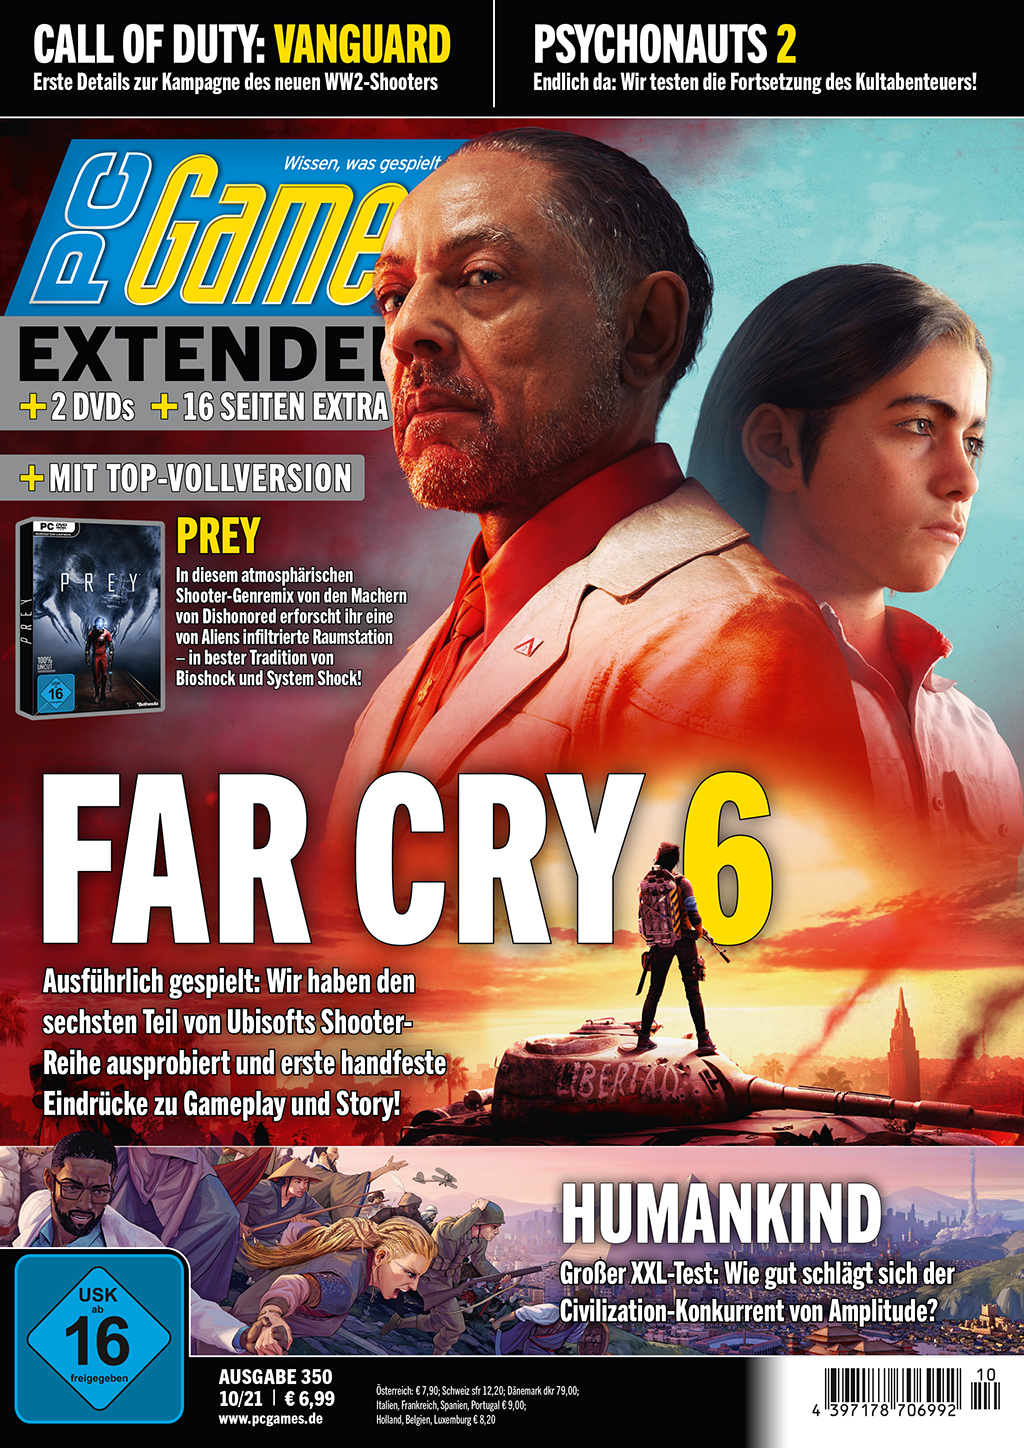 PC Games 10/21 with the title topic Far Cry 6, Humankind in the test and much more. m.